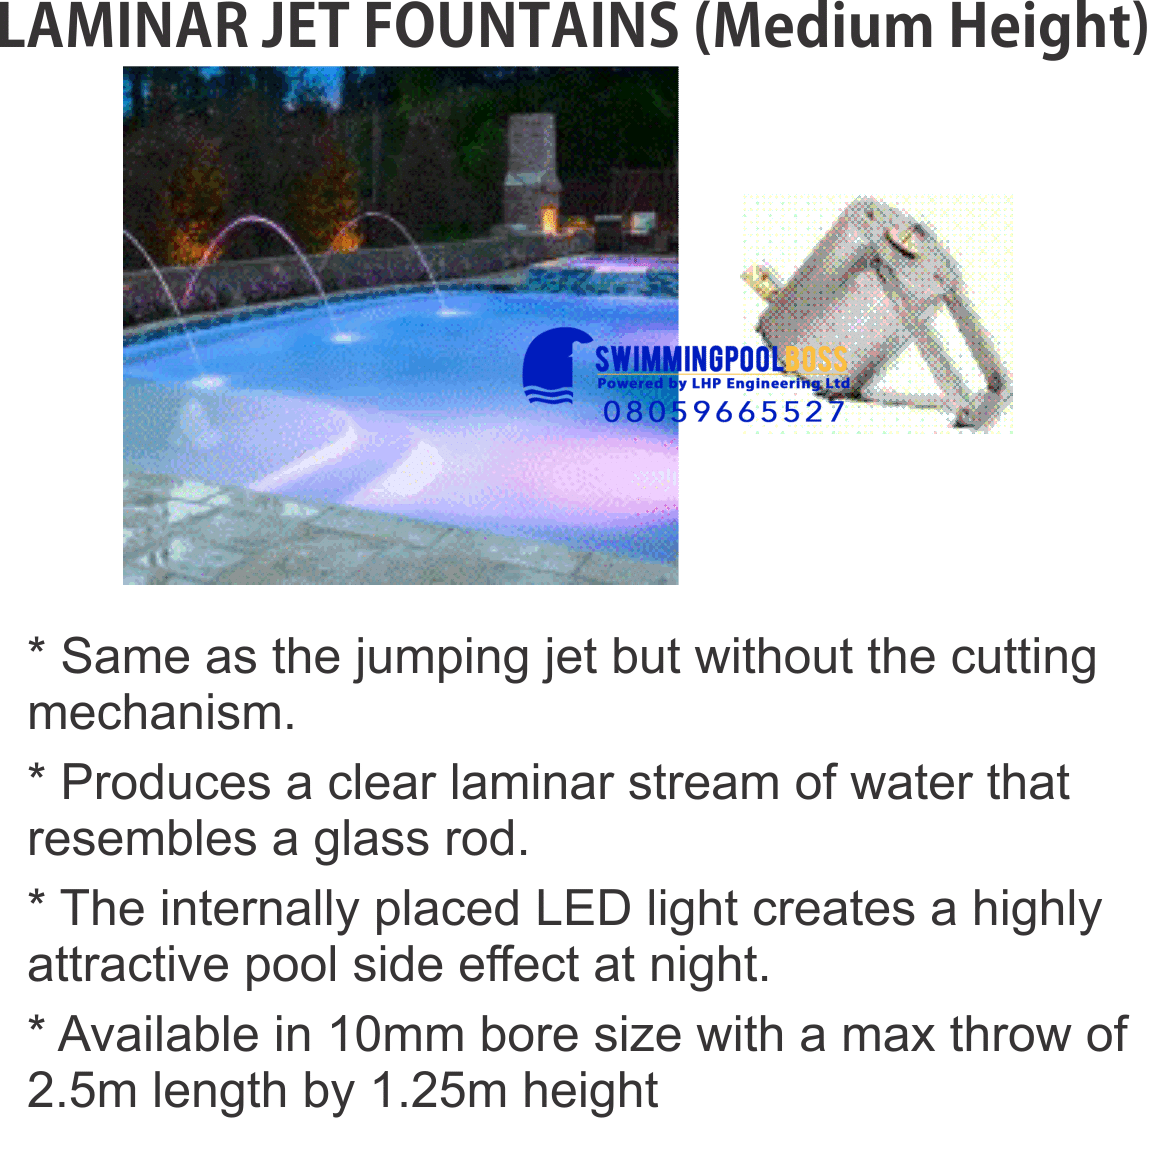 PROGRAMMABLE DANCING JET FOUNTAINS